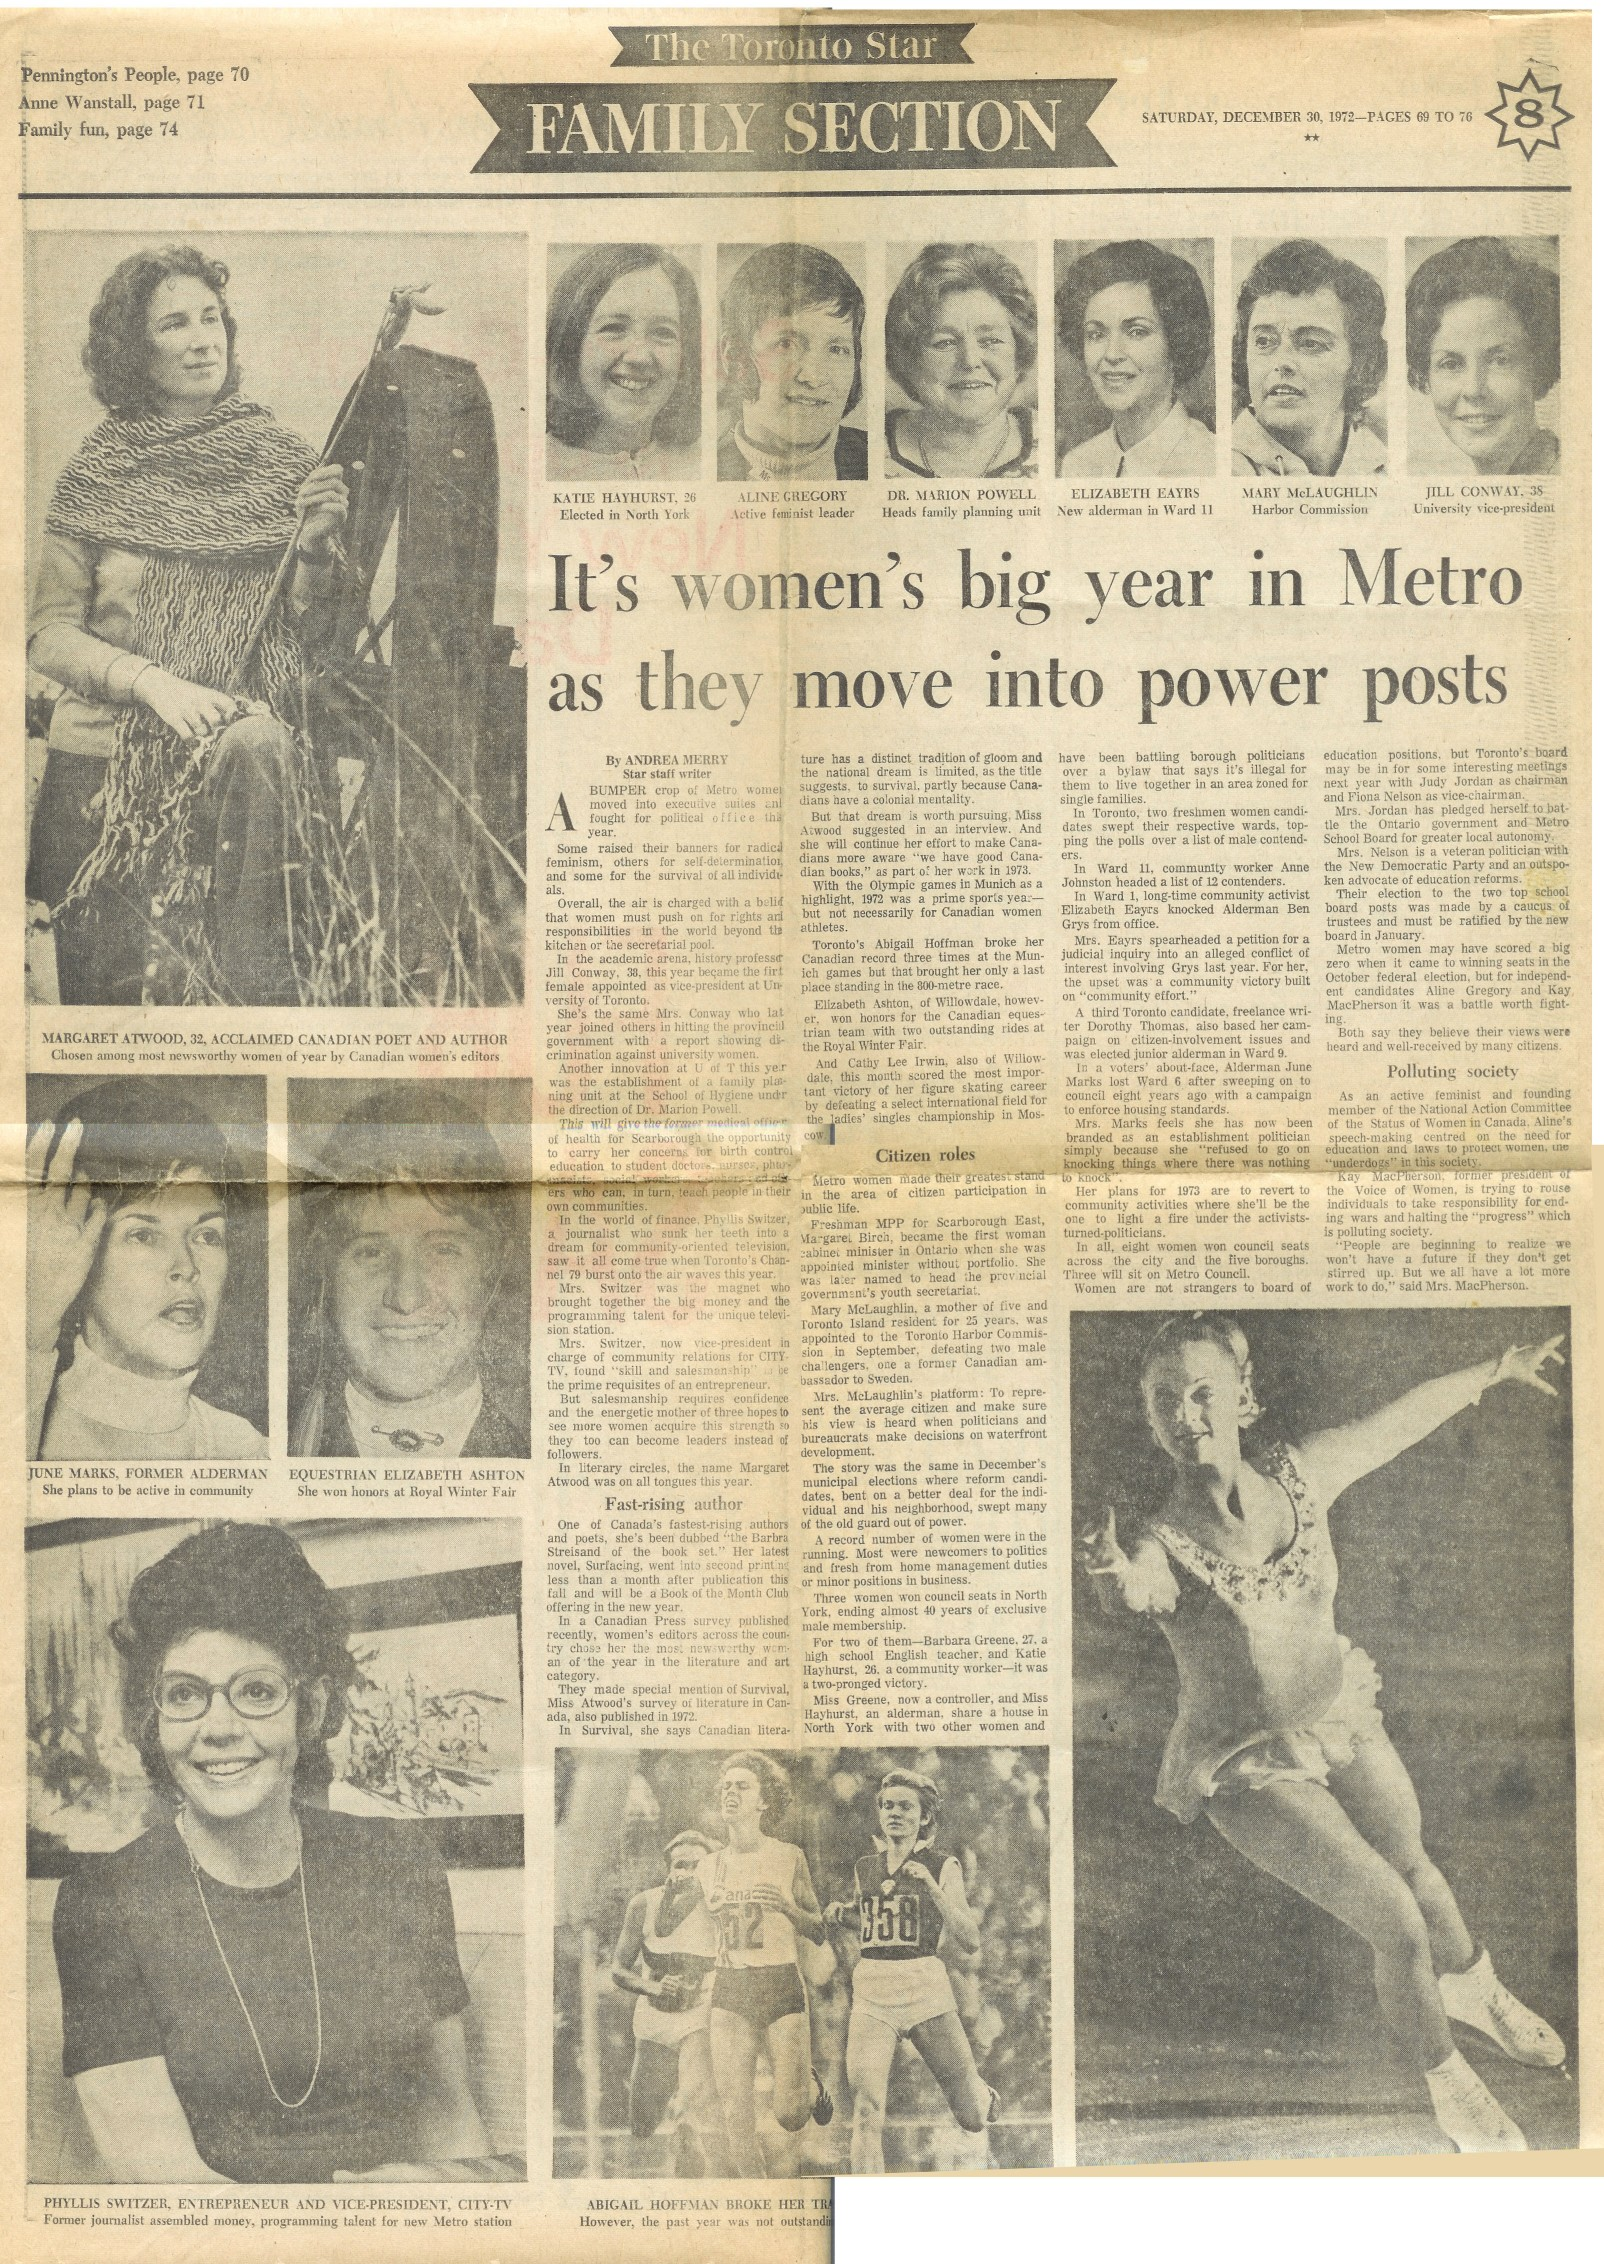 It's women's big year in Metro - Toronto Star - Dec 1972